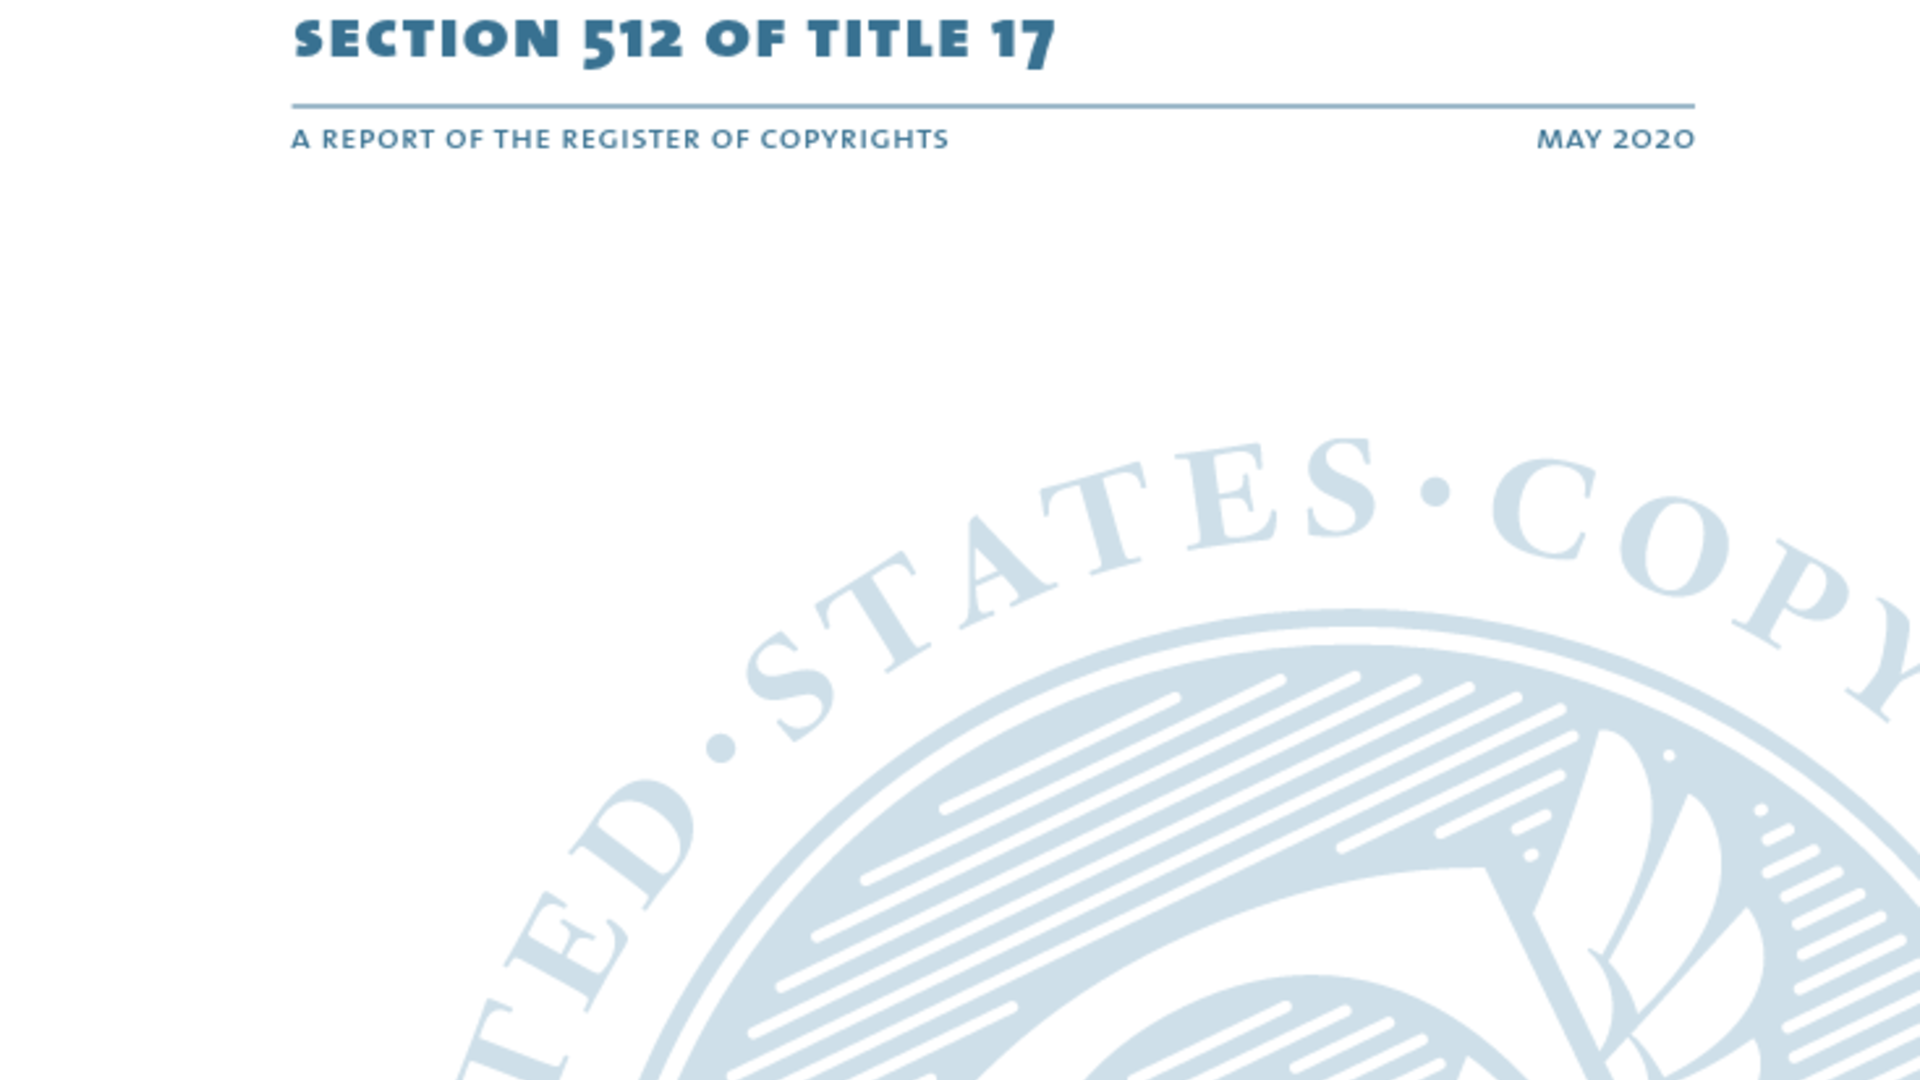 Fairness Rocks News United States Copyright Office Report Section 512